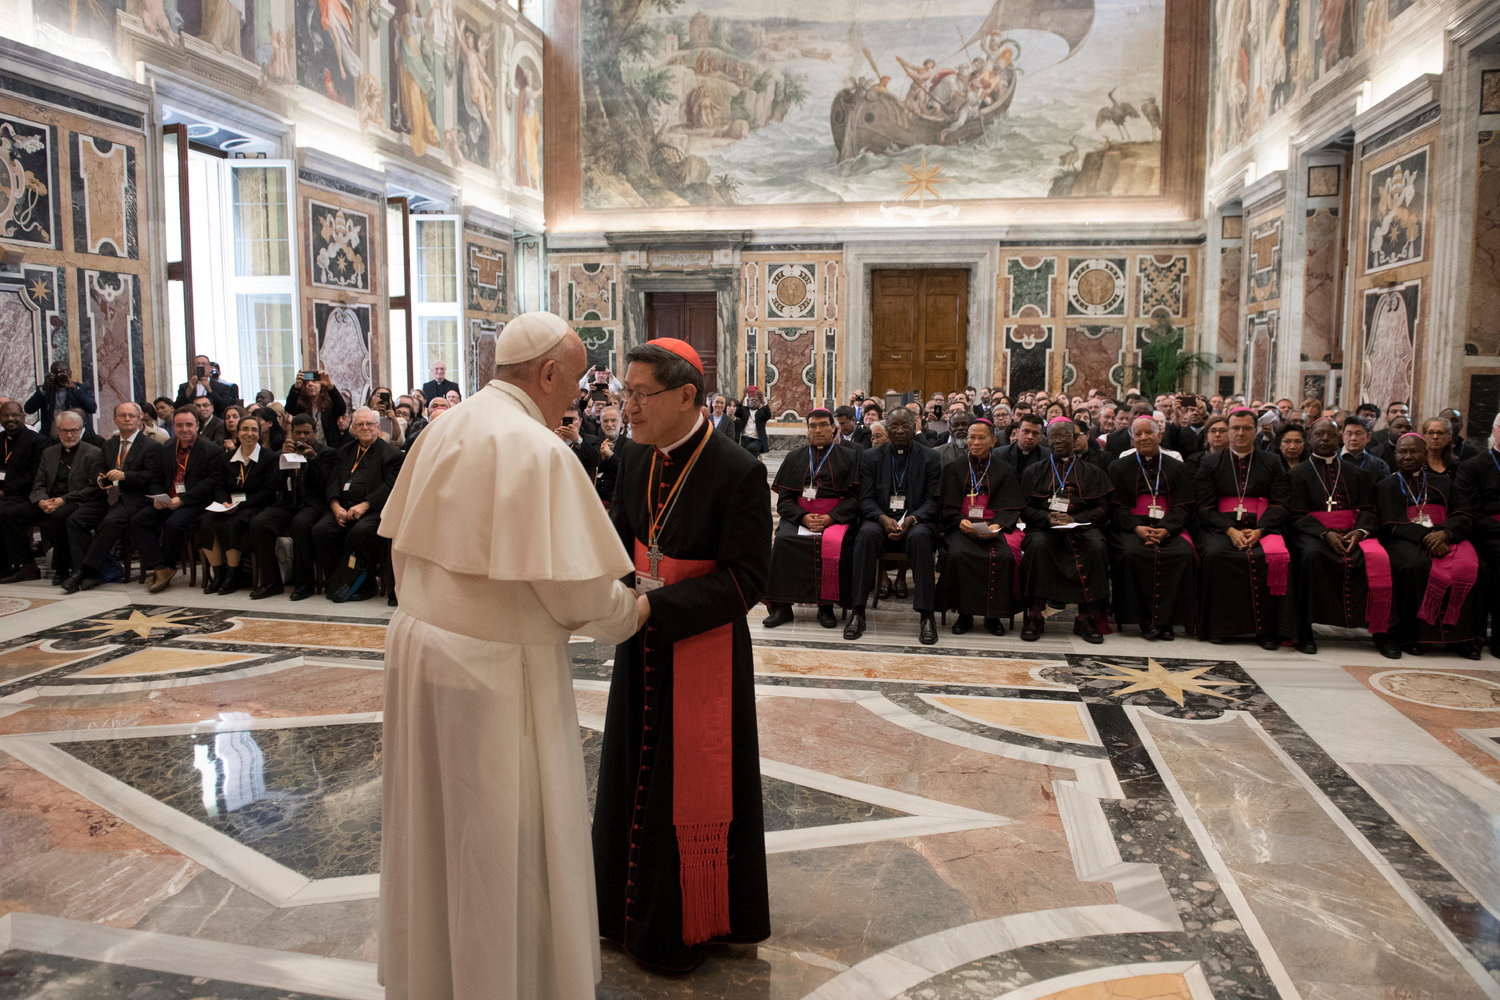 Philippine Cardinal Luis Antonio Tagle of Manila, president of the Catholic Biblical Federation, greets Pope Francis April 26, 2019, at the Vatican during a special audience marking the federation's 50th anniversary.